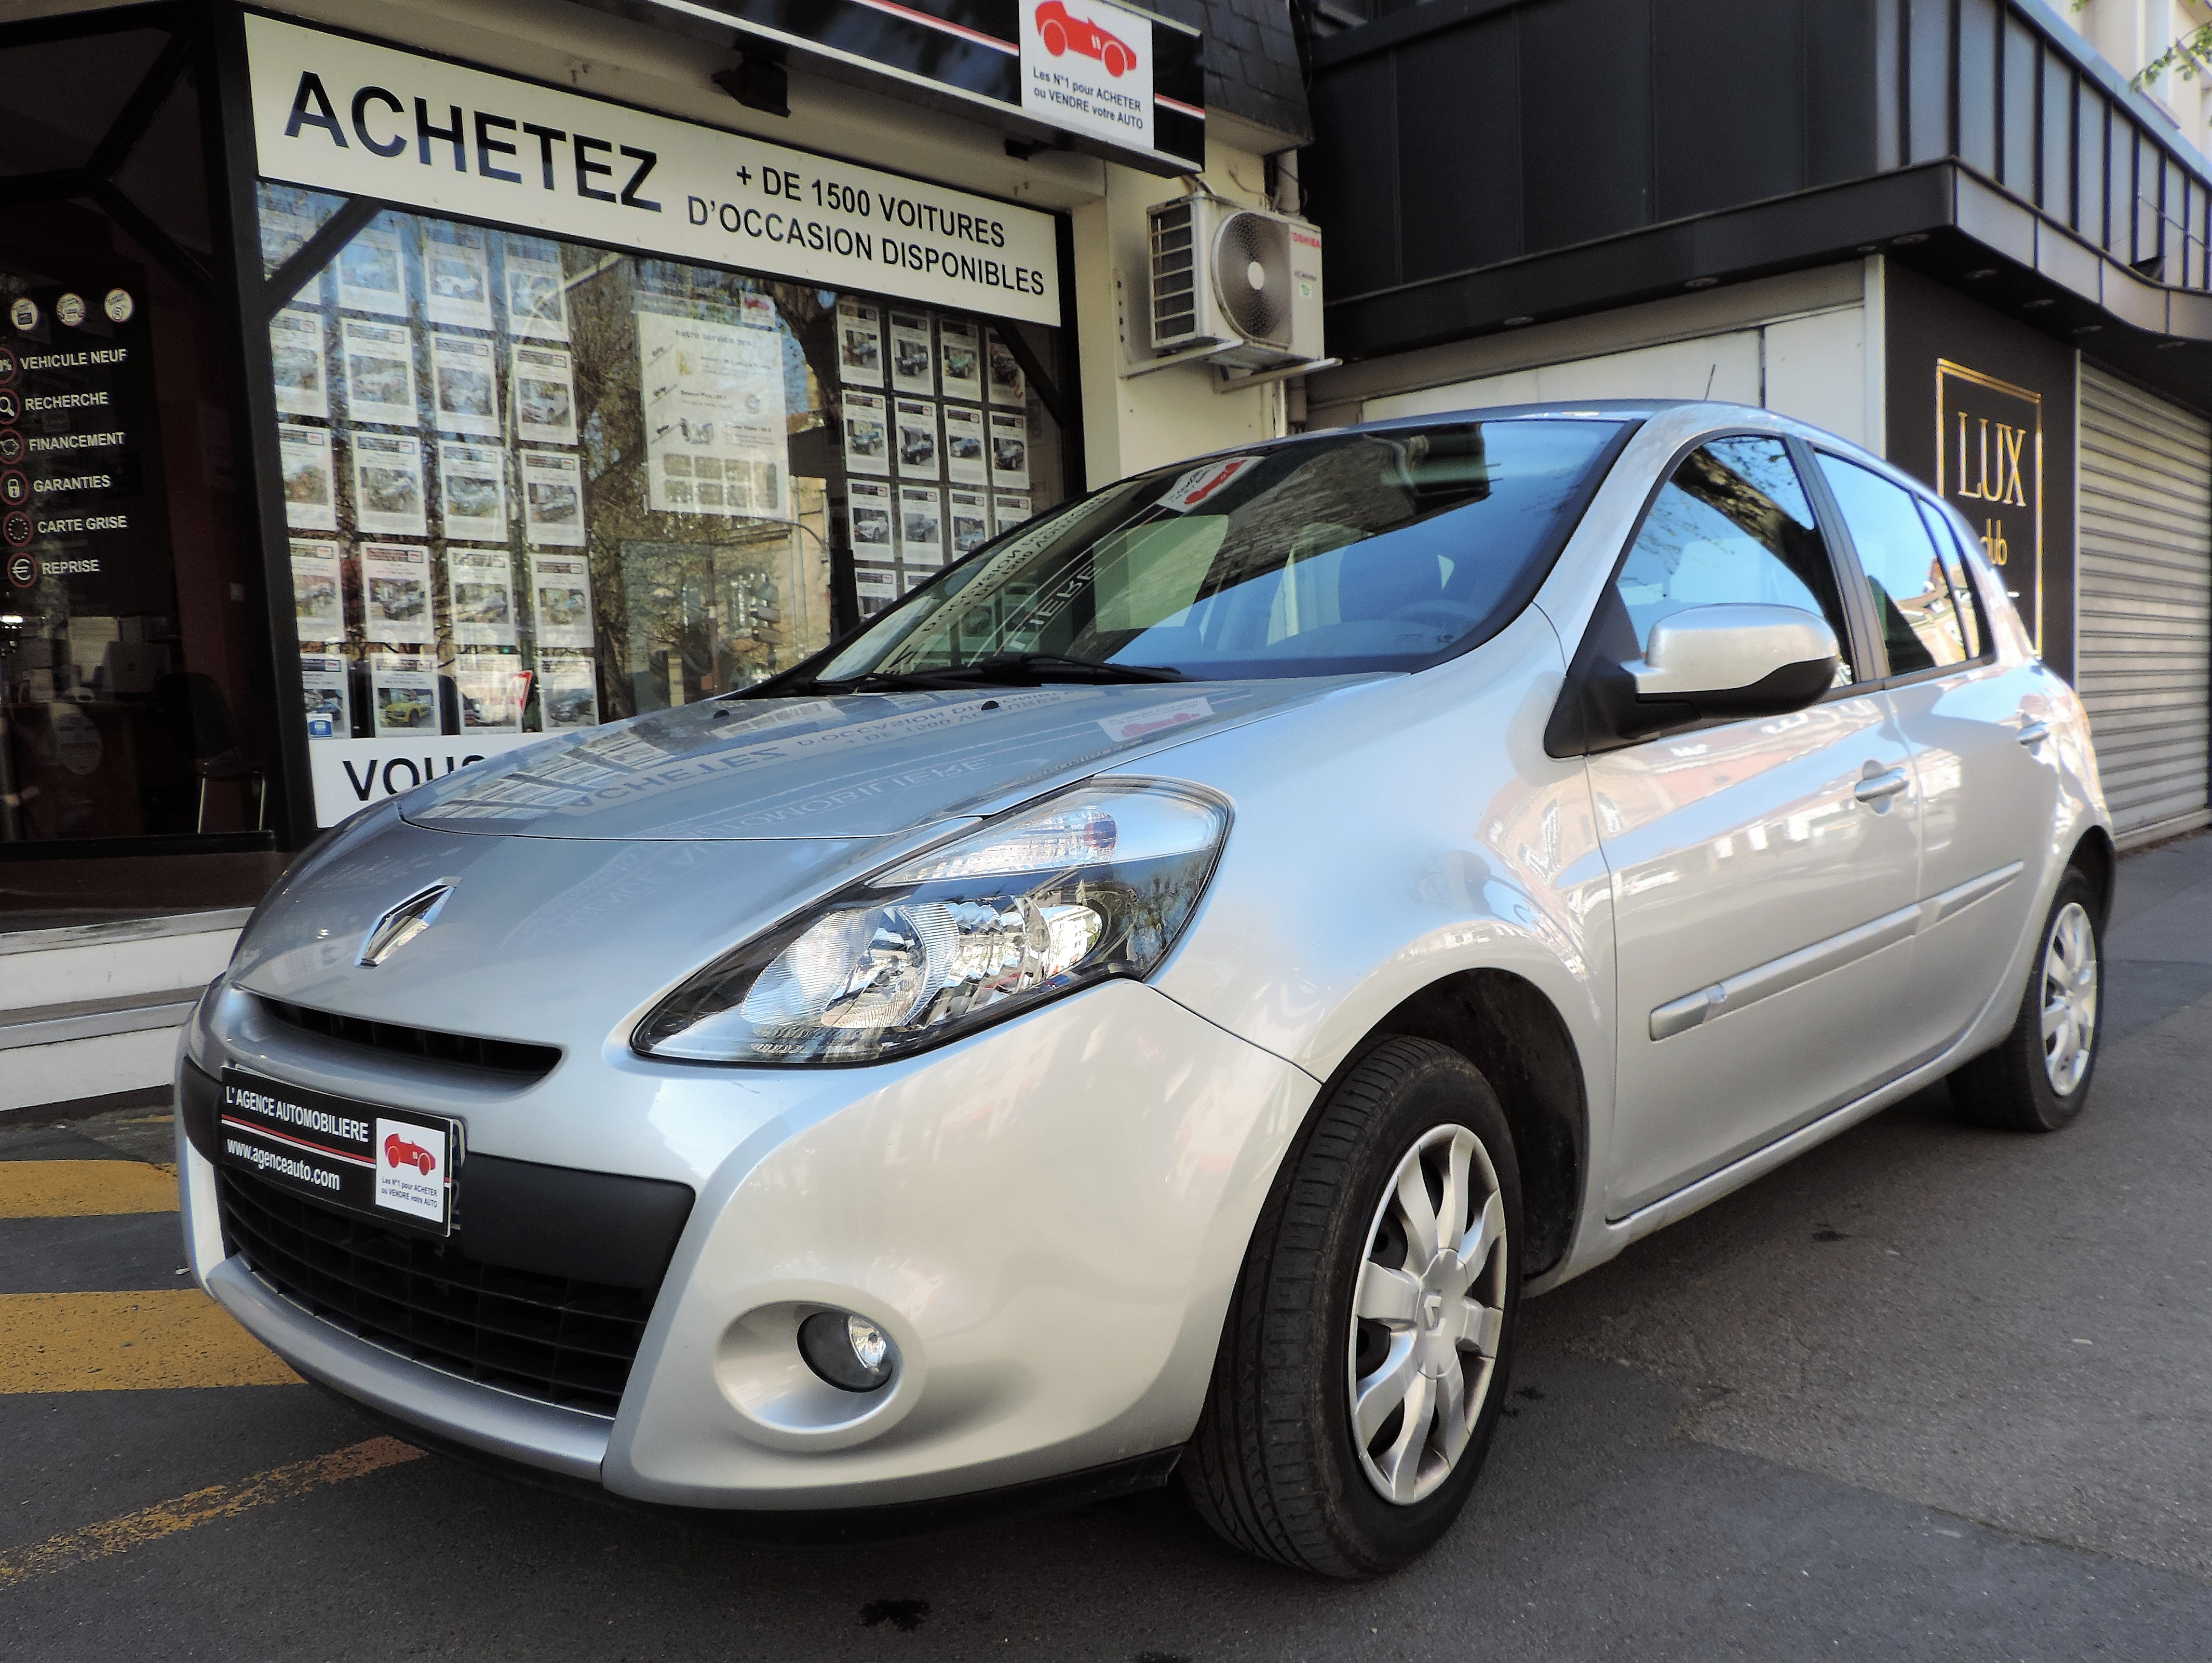 Renault Clio Iii Dci 75 Cv Eco Tomtom Live Occasion Reims